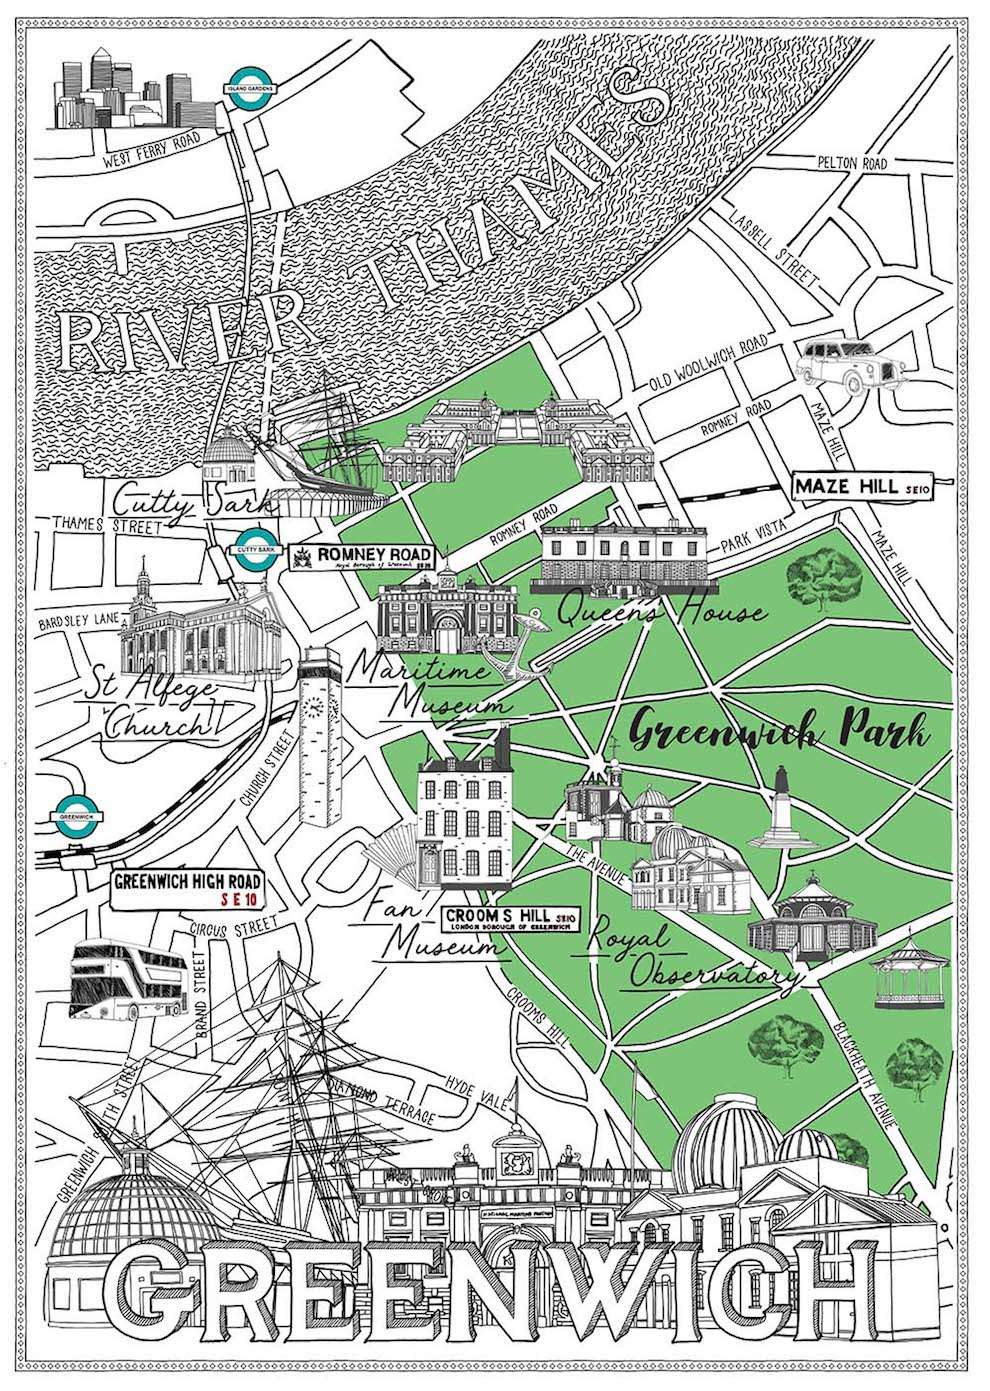 Jitesh Patel, Black and white line illustration map of Greenwich with spot illustration as landmark